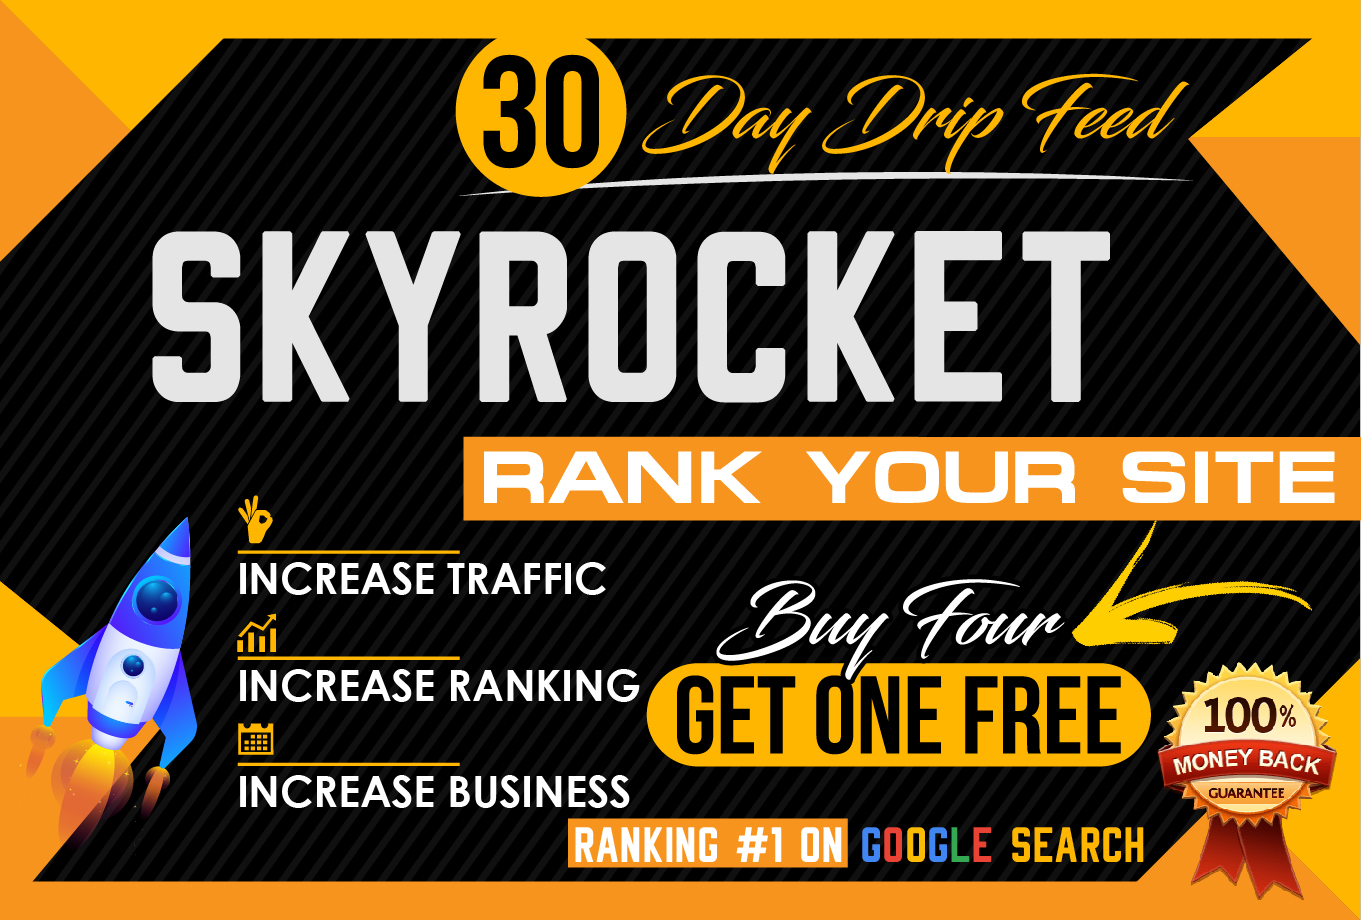 I will build skyrocket 30 day drip feed seo backlinks daily update